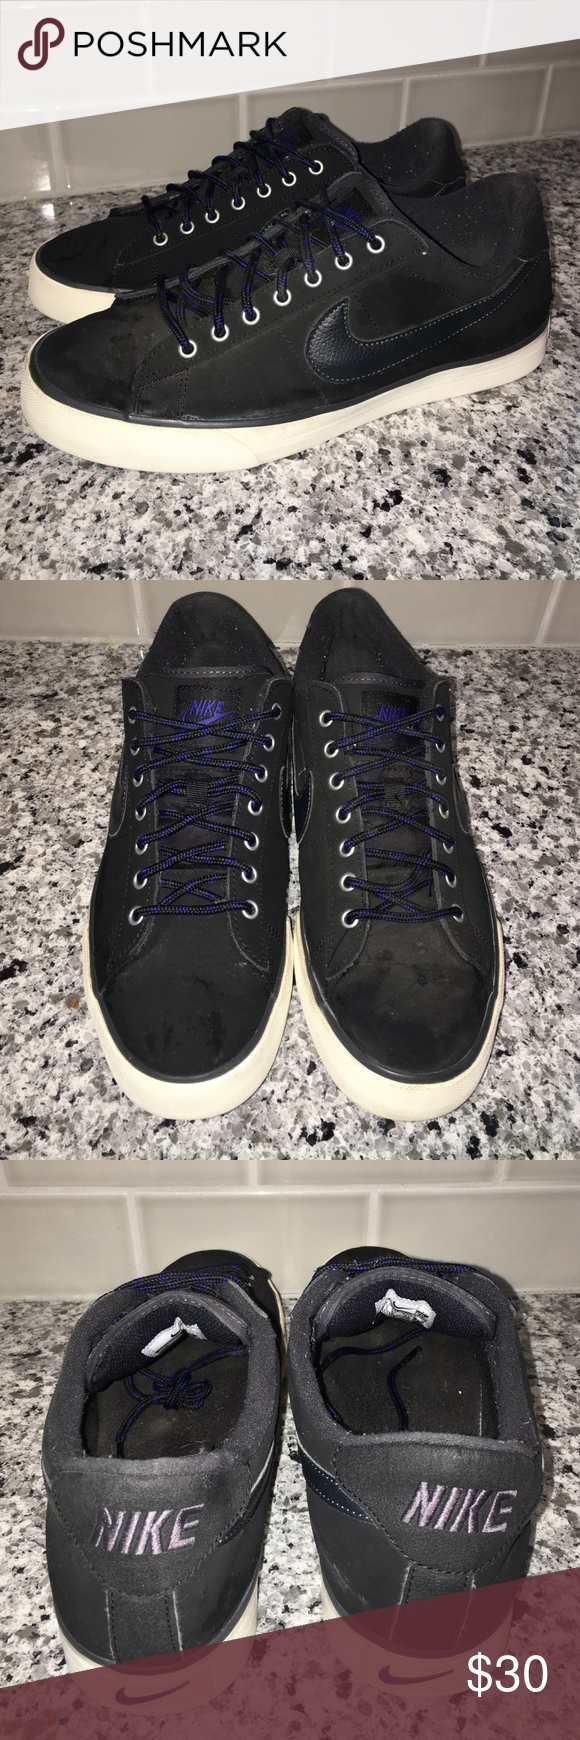 NIKE SWEET CLASSIC 536942-040 NIKE SWEET CLASSIC 536942-040 Great  condition!! Nike Shoes Athletic Shoes d6ba0595c